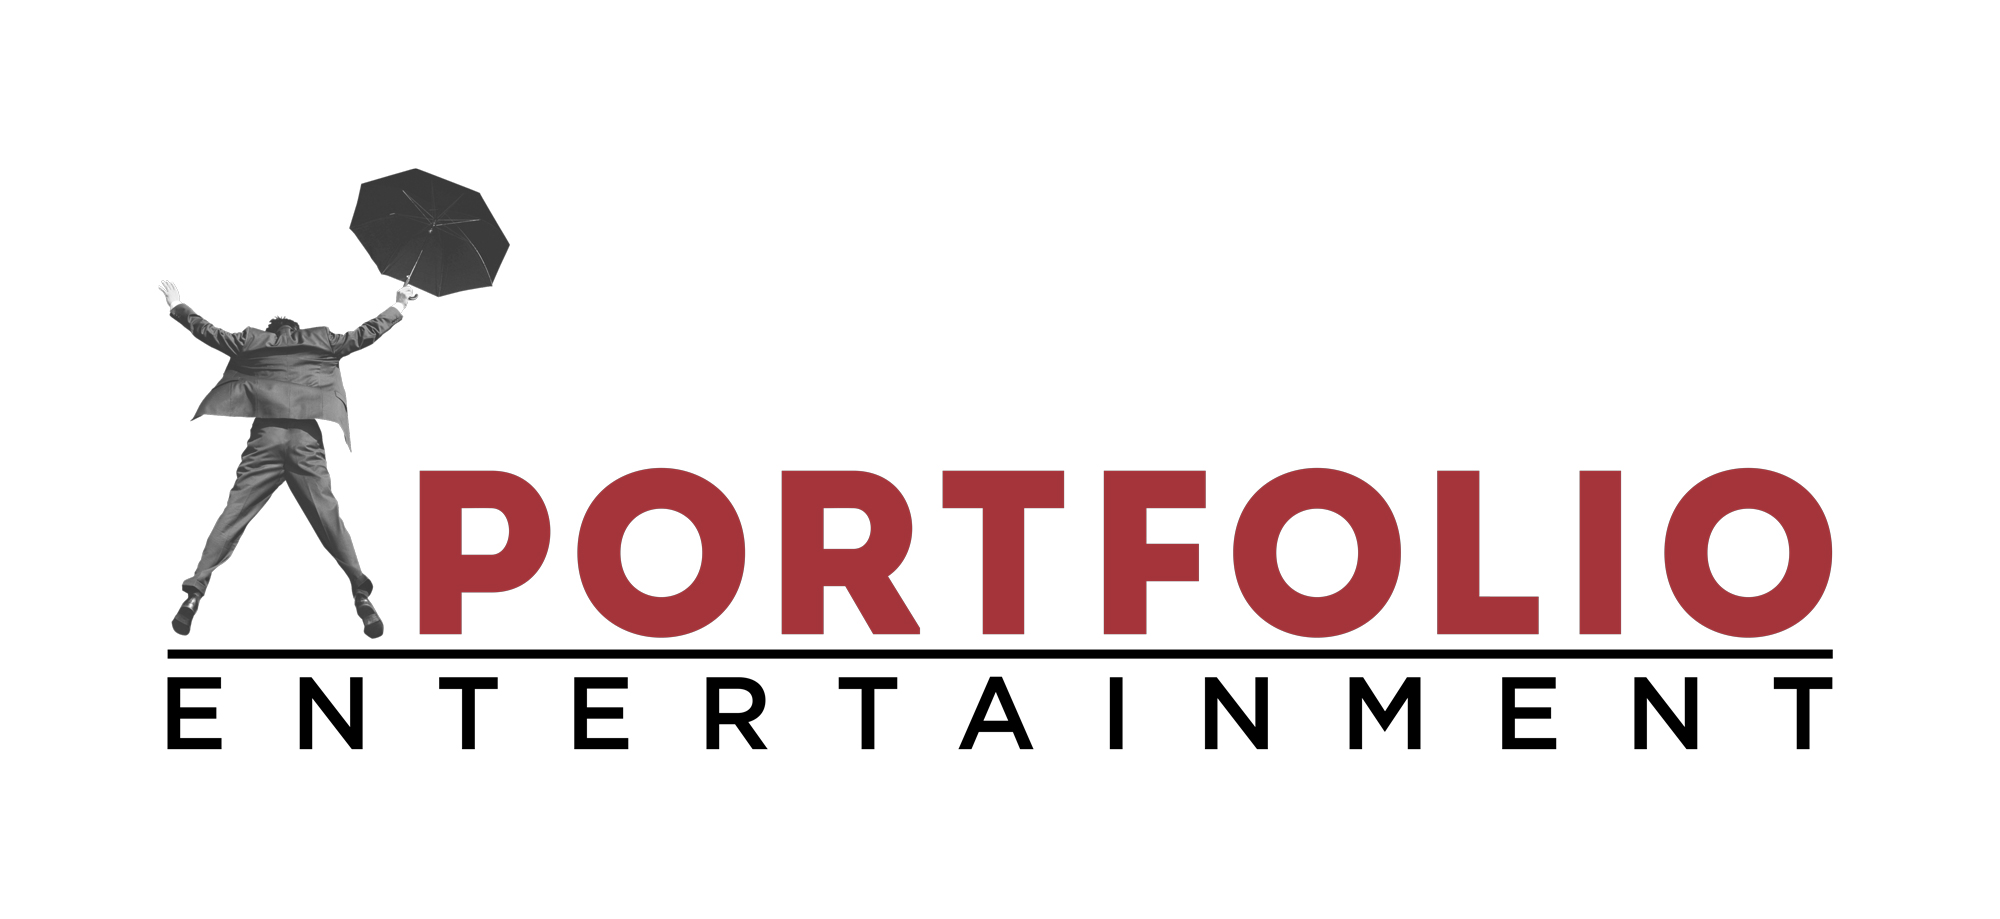 portfolio entertainment rh portfolioentertainment com lakeshore entertainment logo wikia lakeshore entertainment logo clg